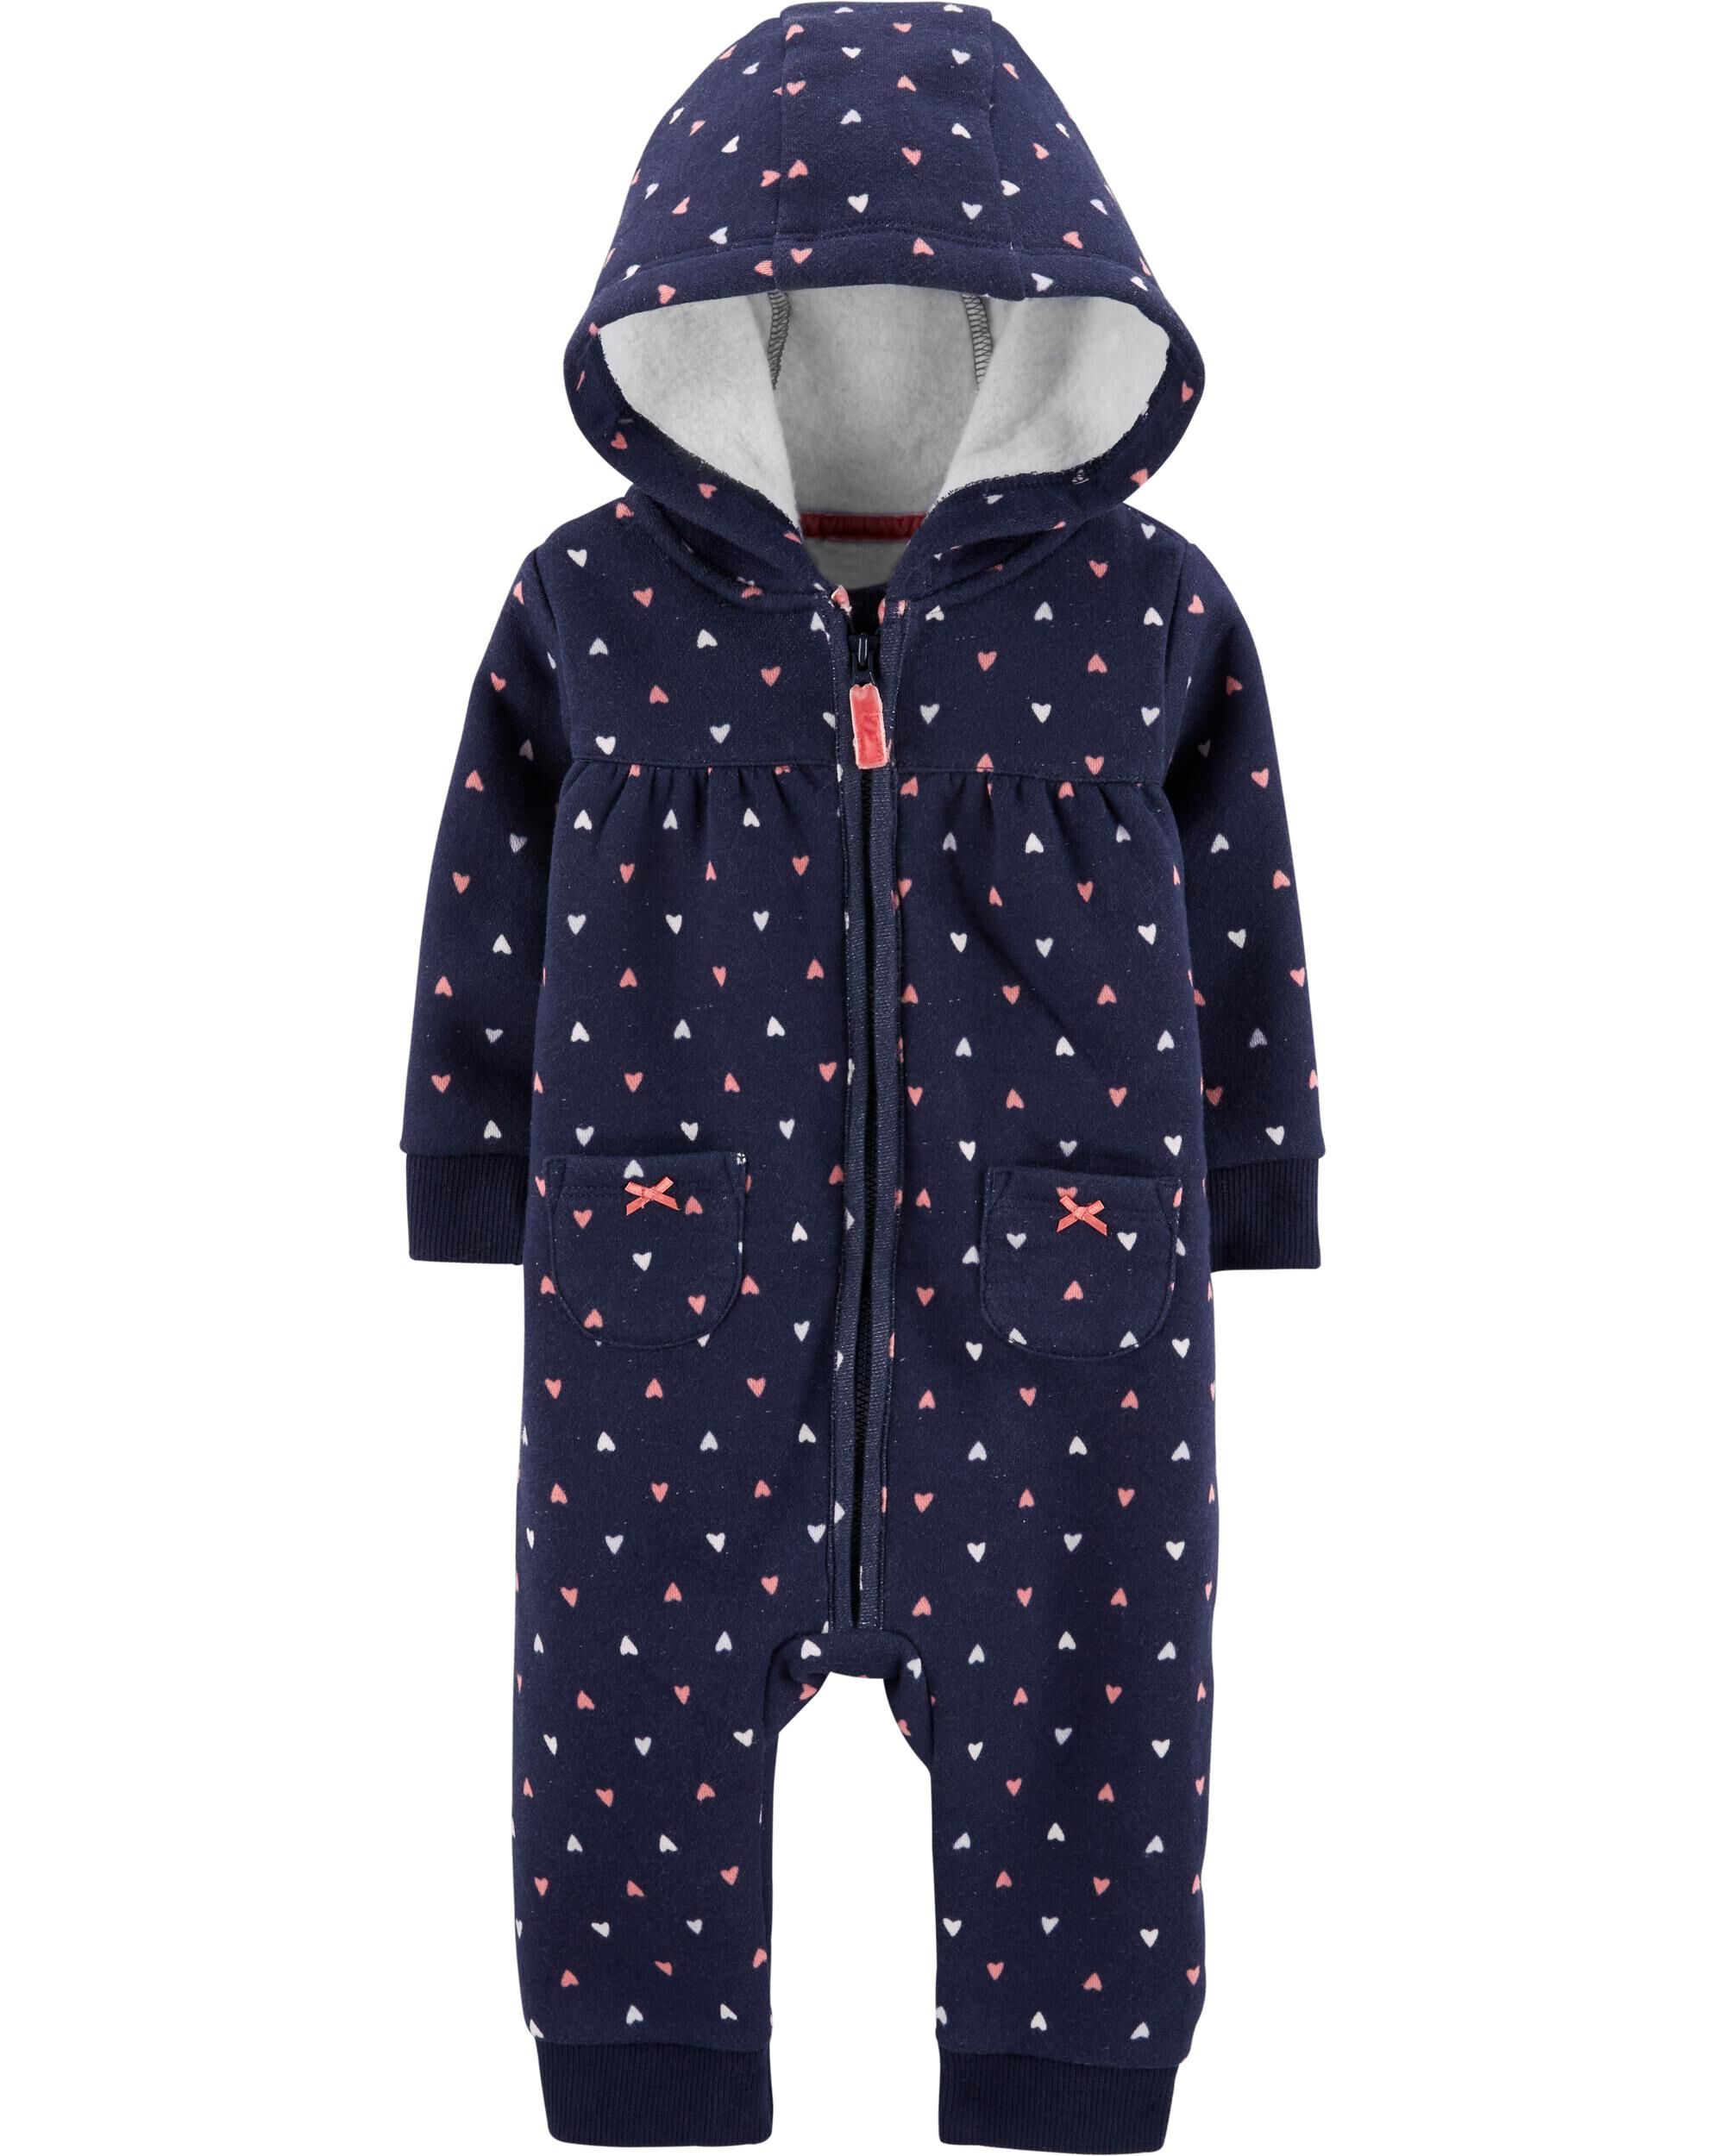 *CLEARANCE* Hooded Heart Jumpsuit